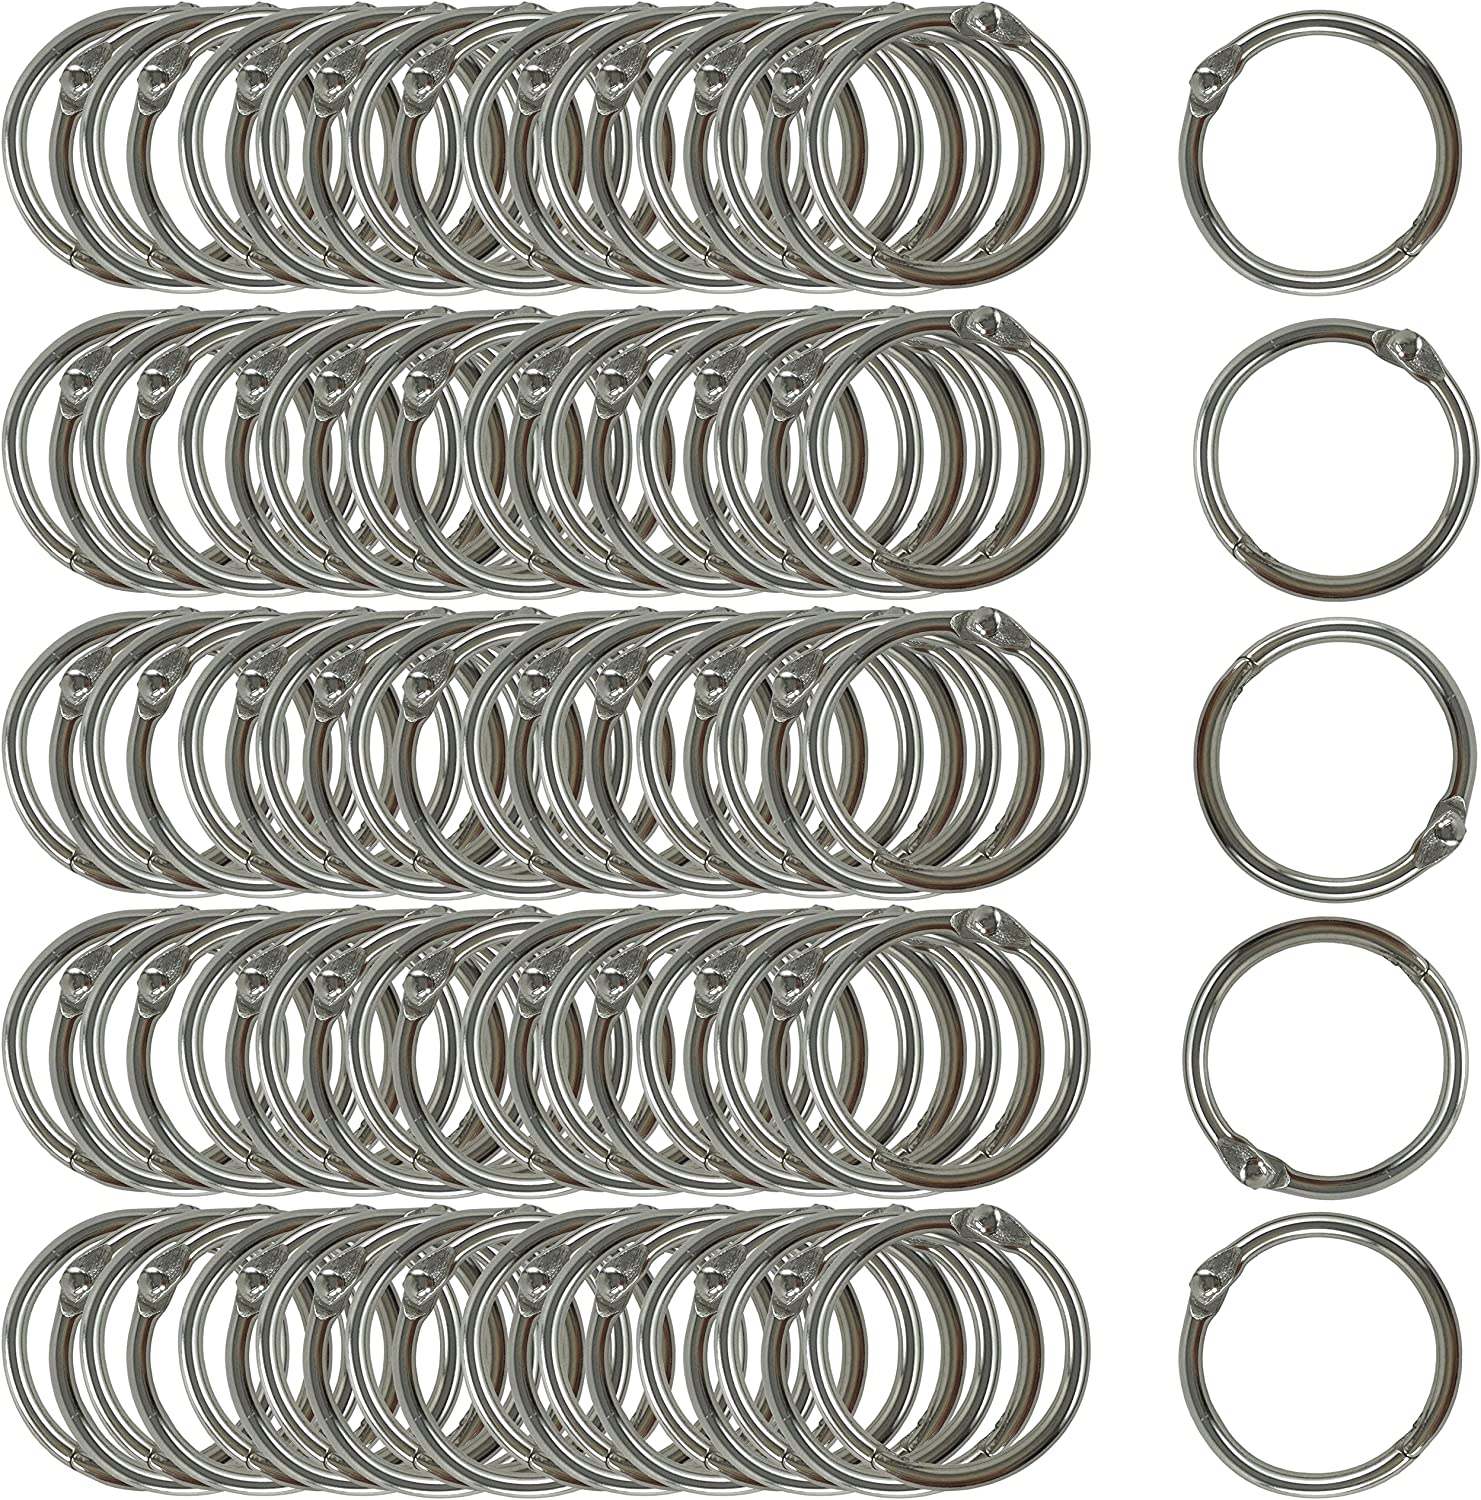 Clipco Book Rings Small 1-Inch Nickel Plated Metal (100-Pack)